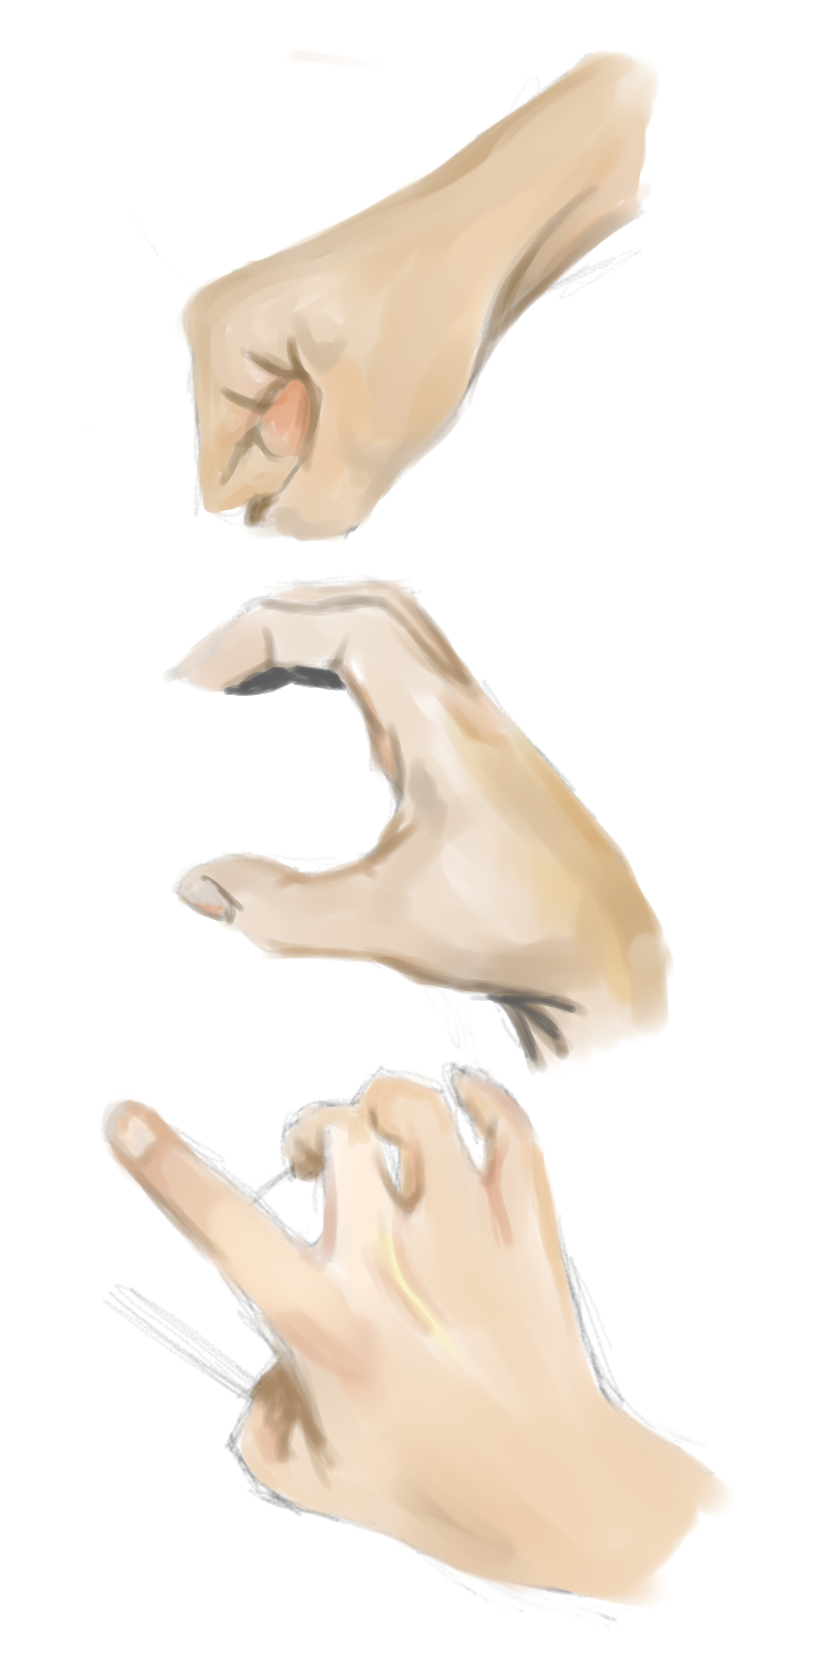 [Image: hands_by_timeandrelativedis-d6d0wem.png]